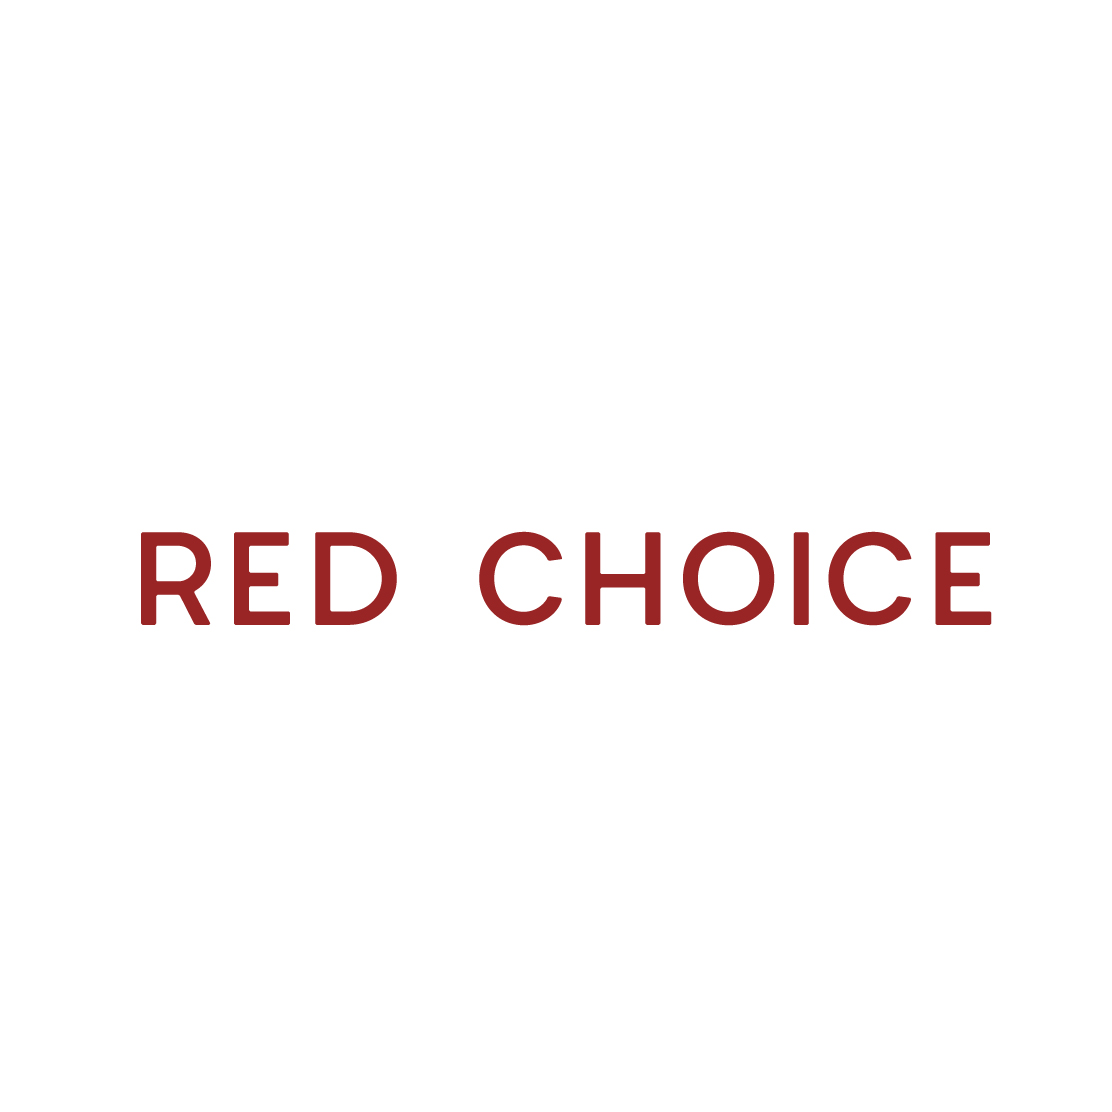 red choice